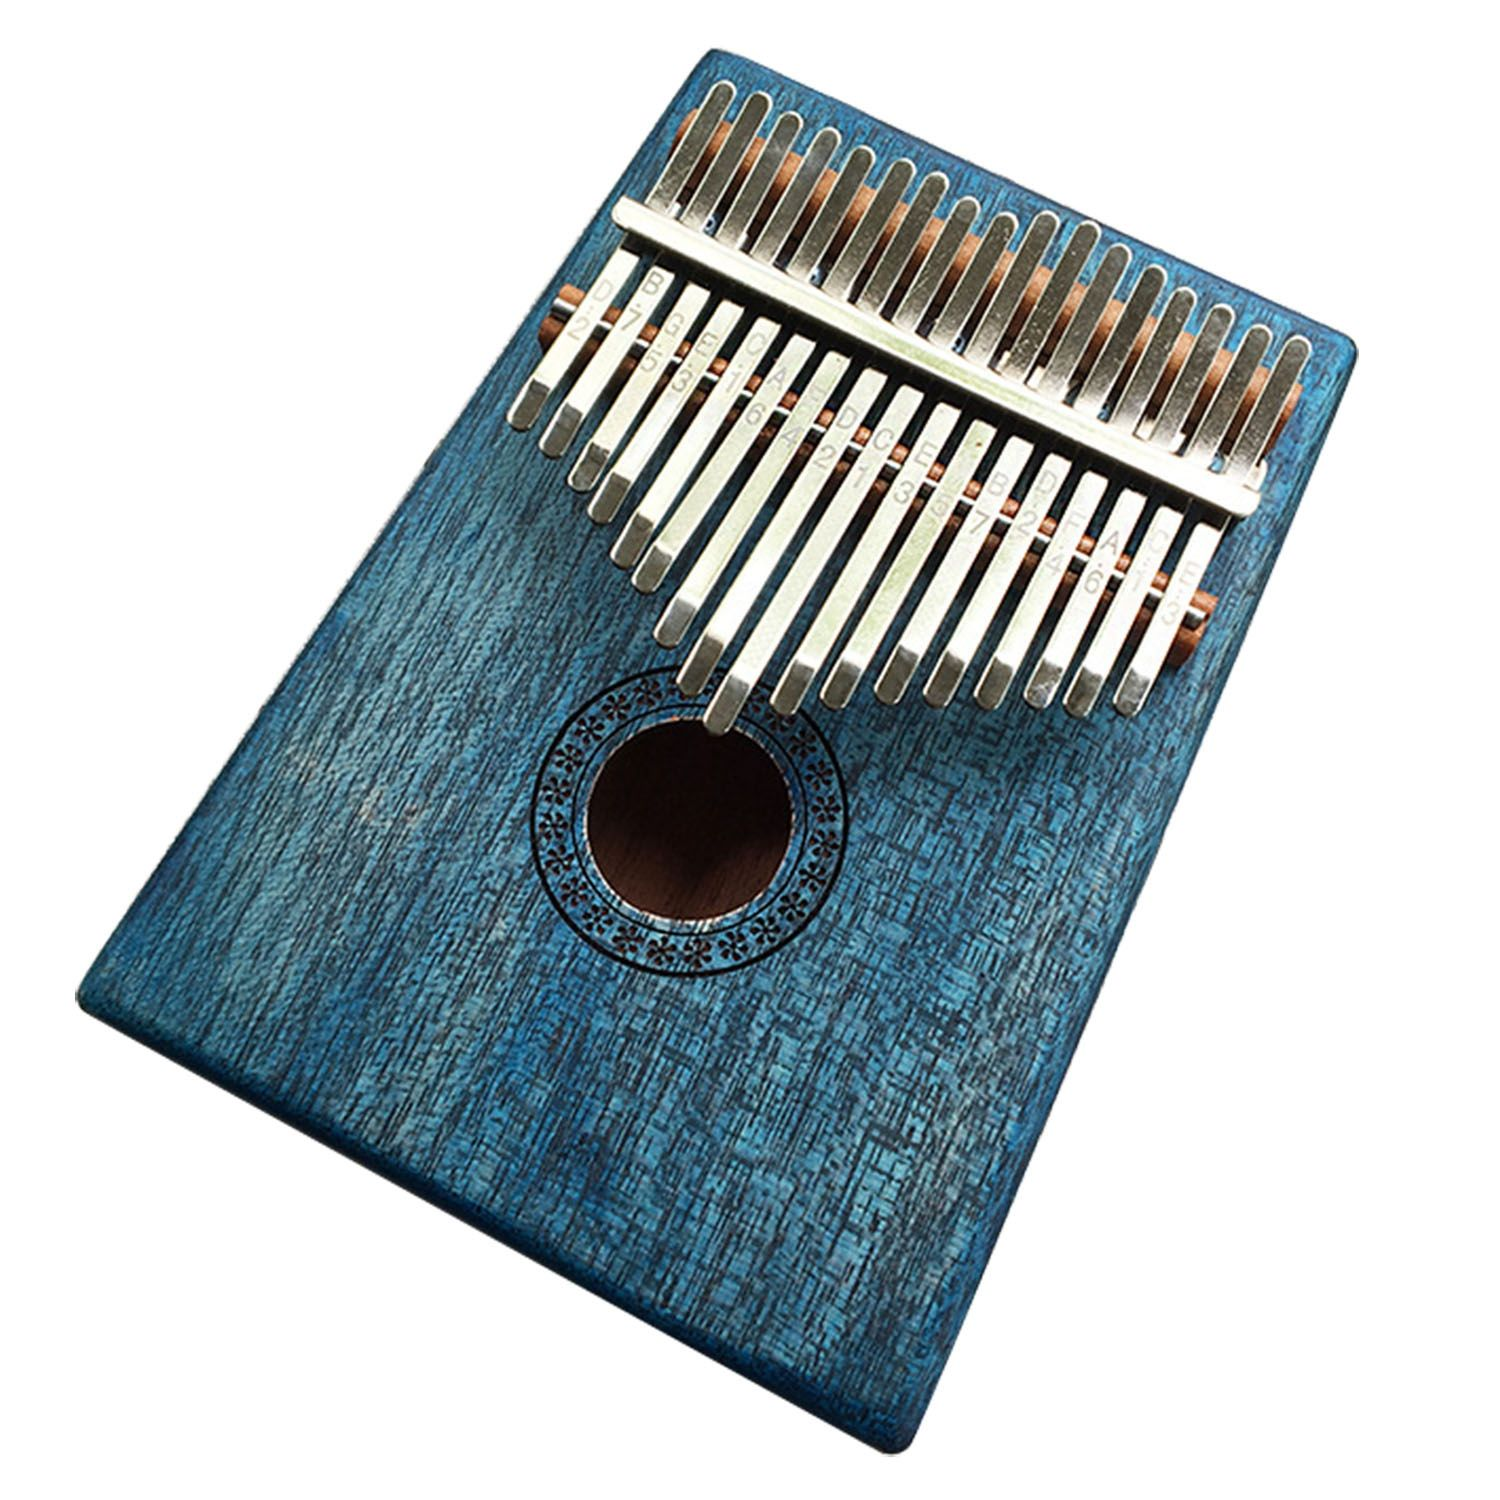 17 Key Kalimba Mahogany Thumb Piano Mbira Natural Mini Keyboard Instrument